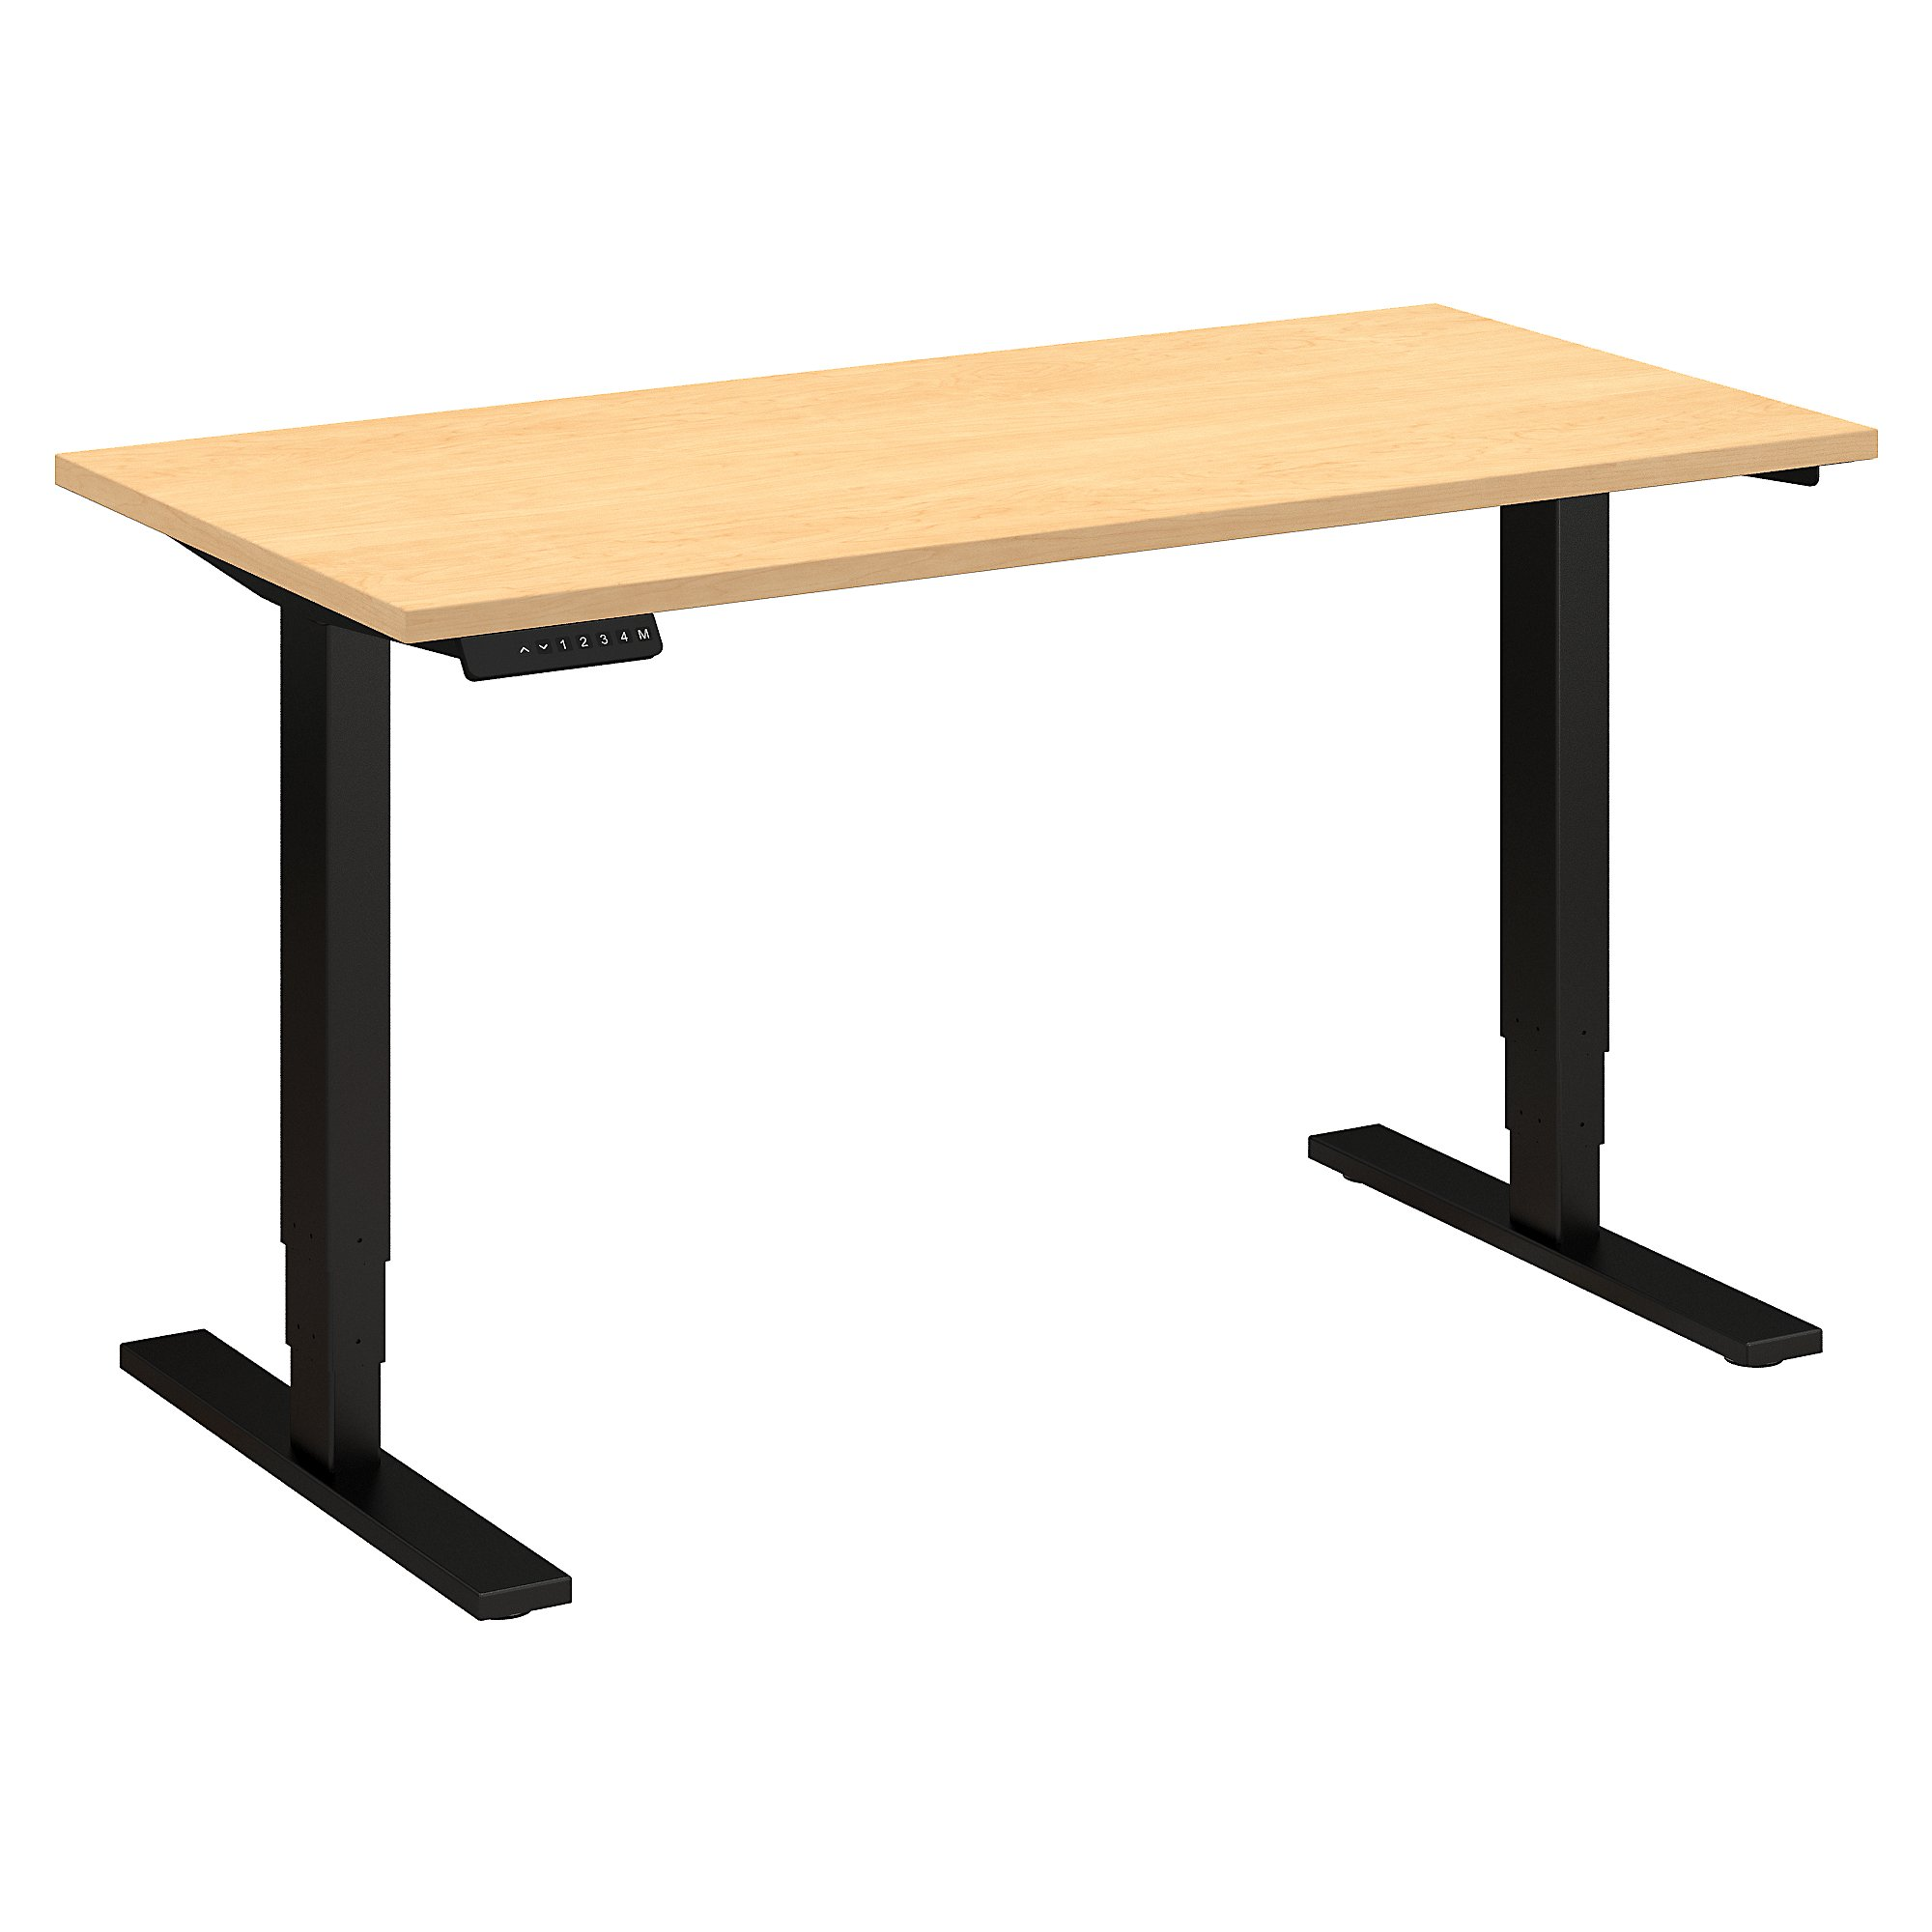 sit-stand-desk-sit-stand-desk-electric-1-2.jpg